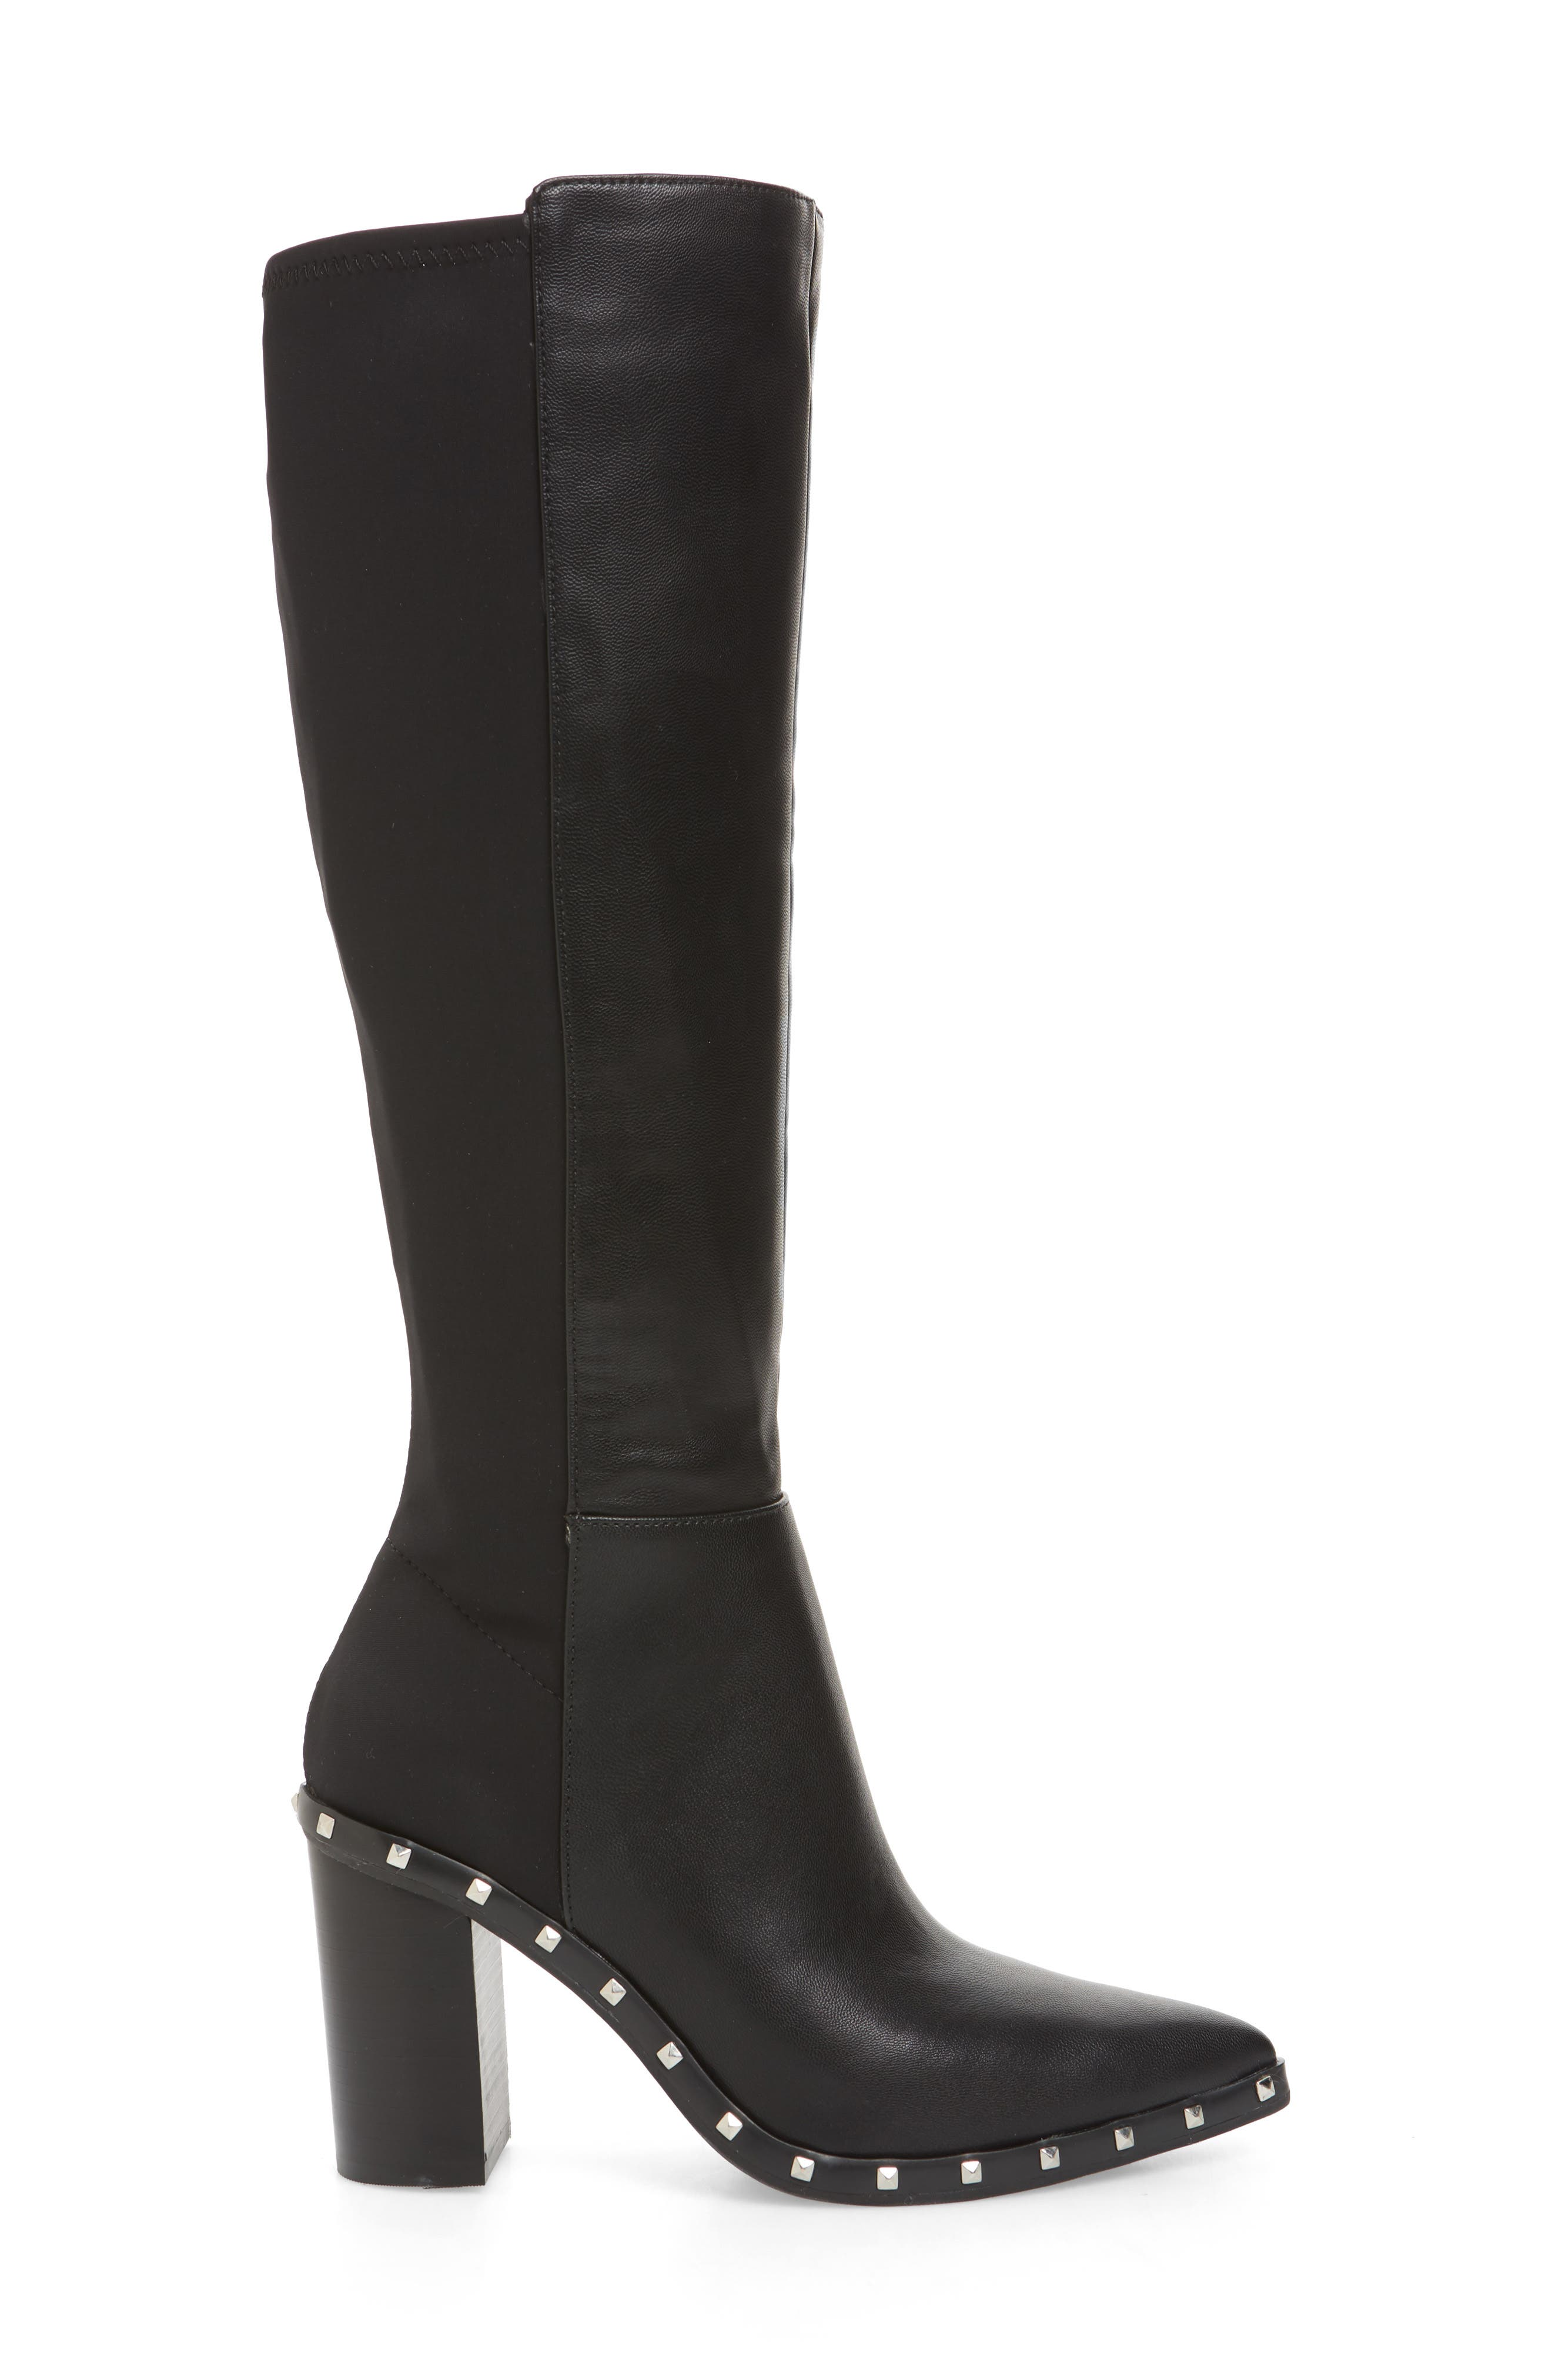 CHARLES BY CHARLES DAVID, Studded Knee High Stretch Boot, Alternate thumbnail 3, color, BLACK FAUX NUBUCK LEATHER